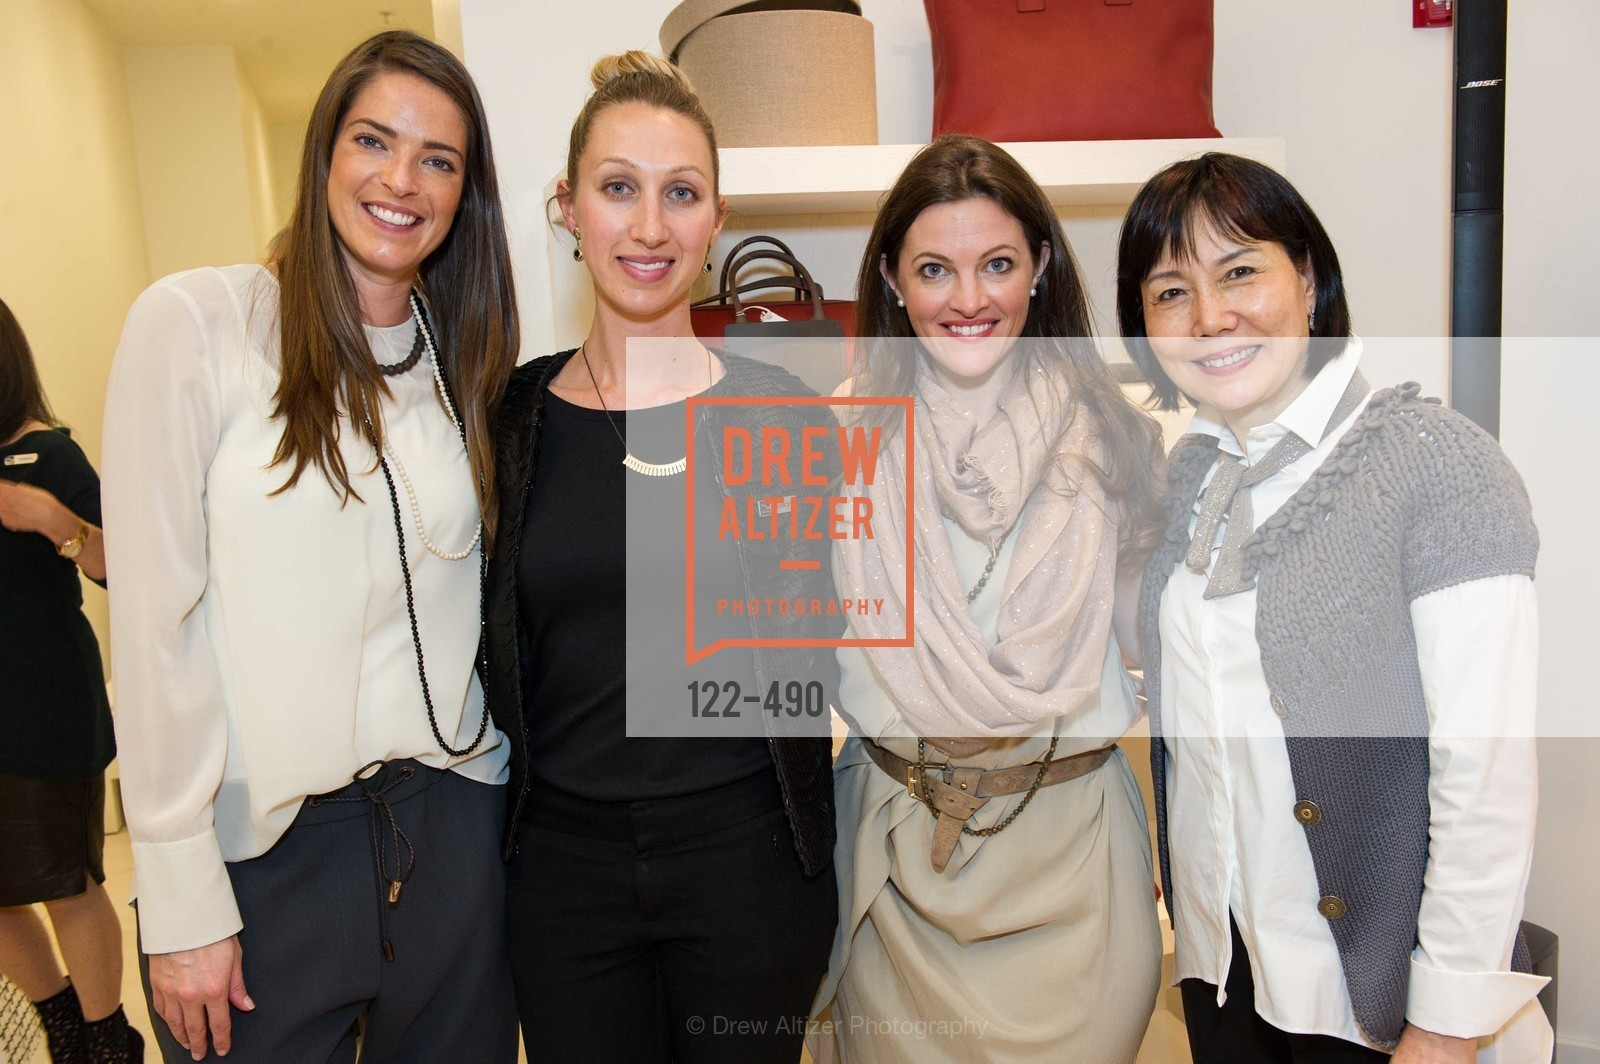 Samantha Wood, Quincey Firth, Alicia Sabella, Grace Hsiung, Nancy Kukacka Hosts Brunello Cucinelli at SAKS FIFTH AVENUE Benefitting New Door Ventures, US. The Battery, April 2nd, 2014,Drew Altizer, Drew Altizer Photography, full-service event agency, private events, San Francisco photographer, photographer California